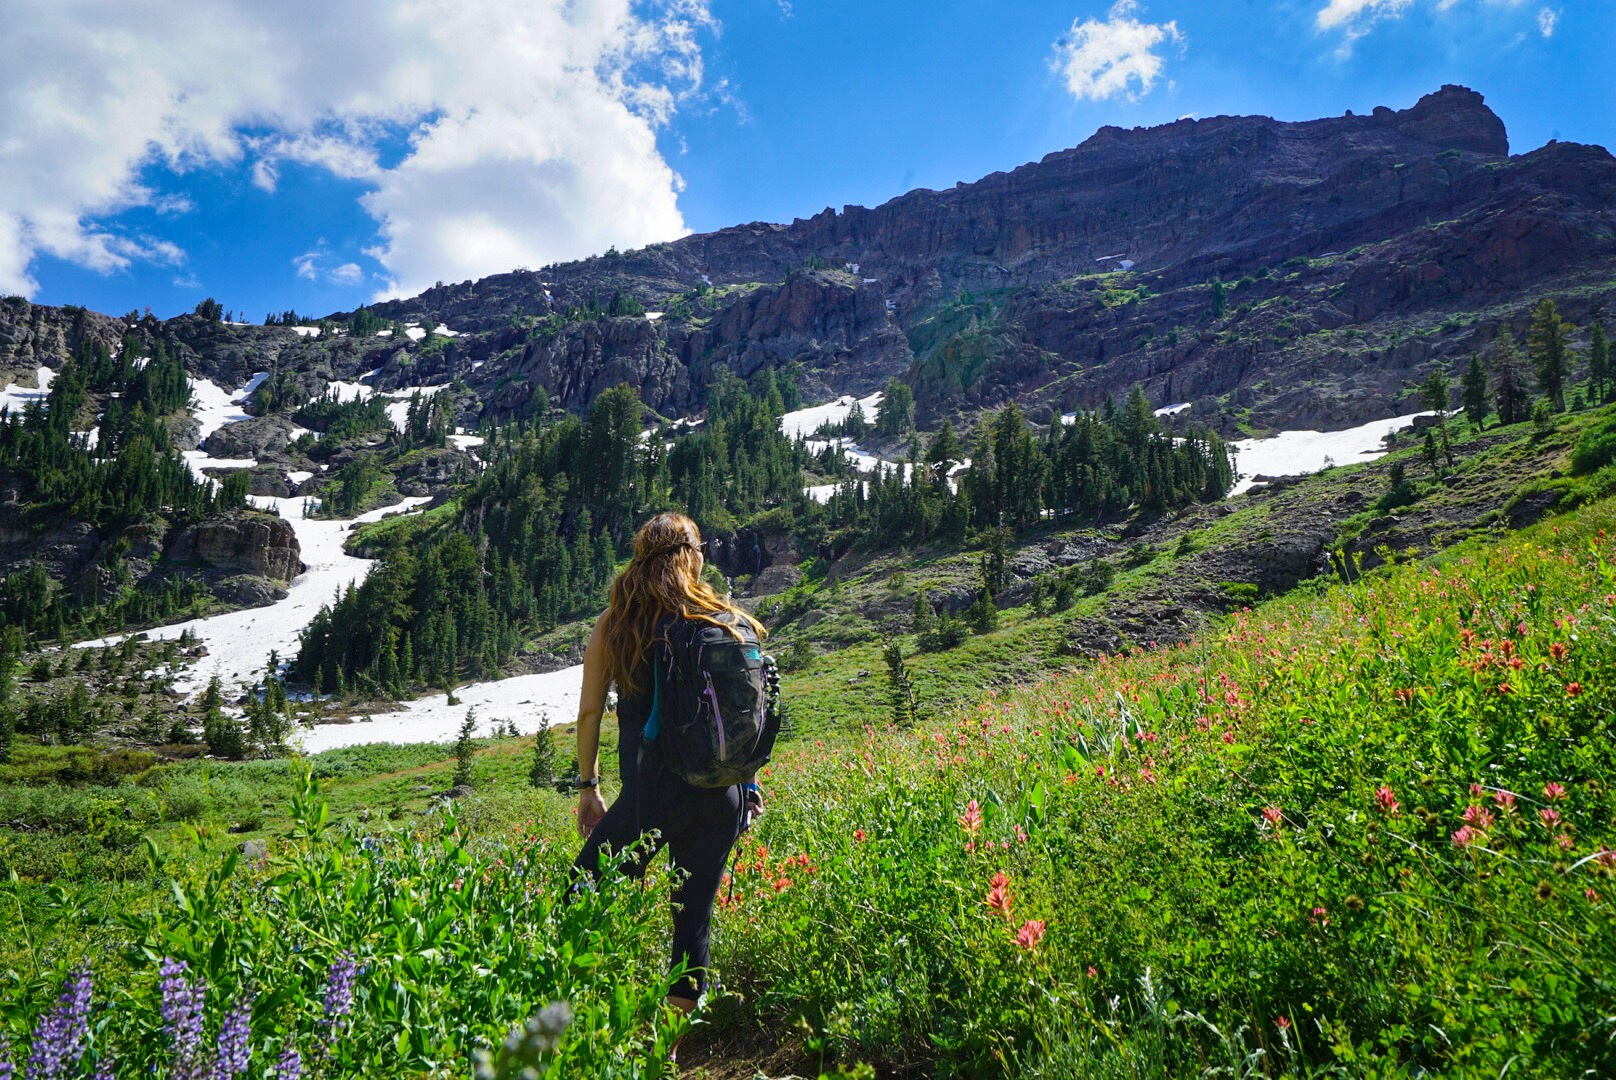 kirkwood mountain travel and adventure inspiration quotes